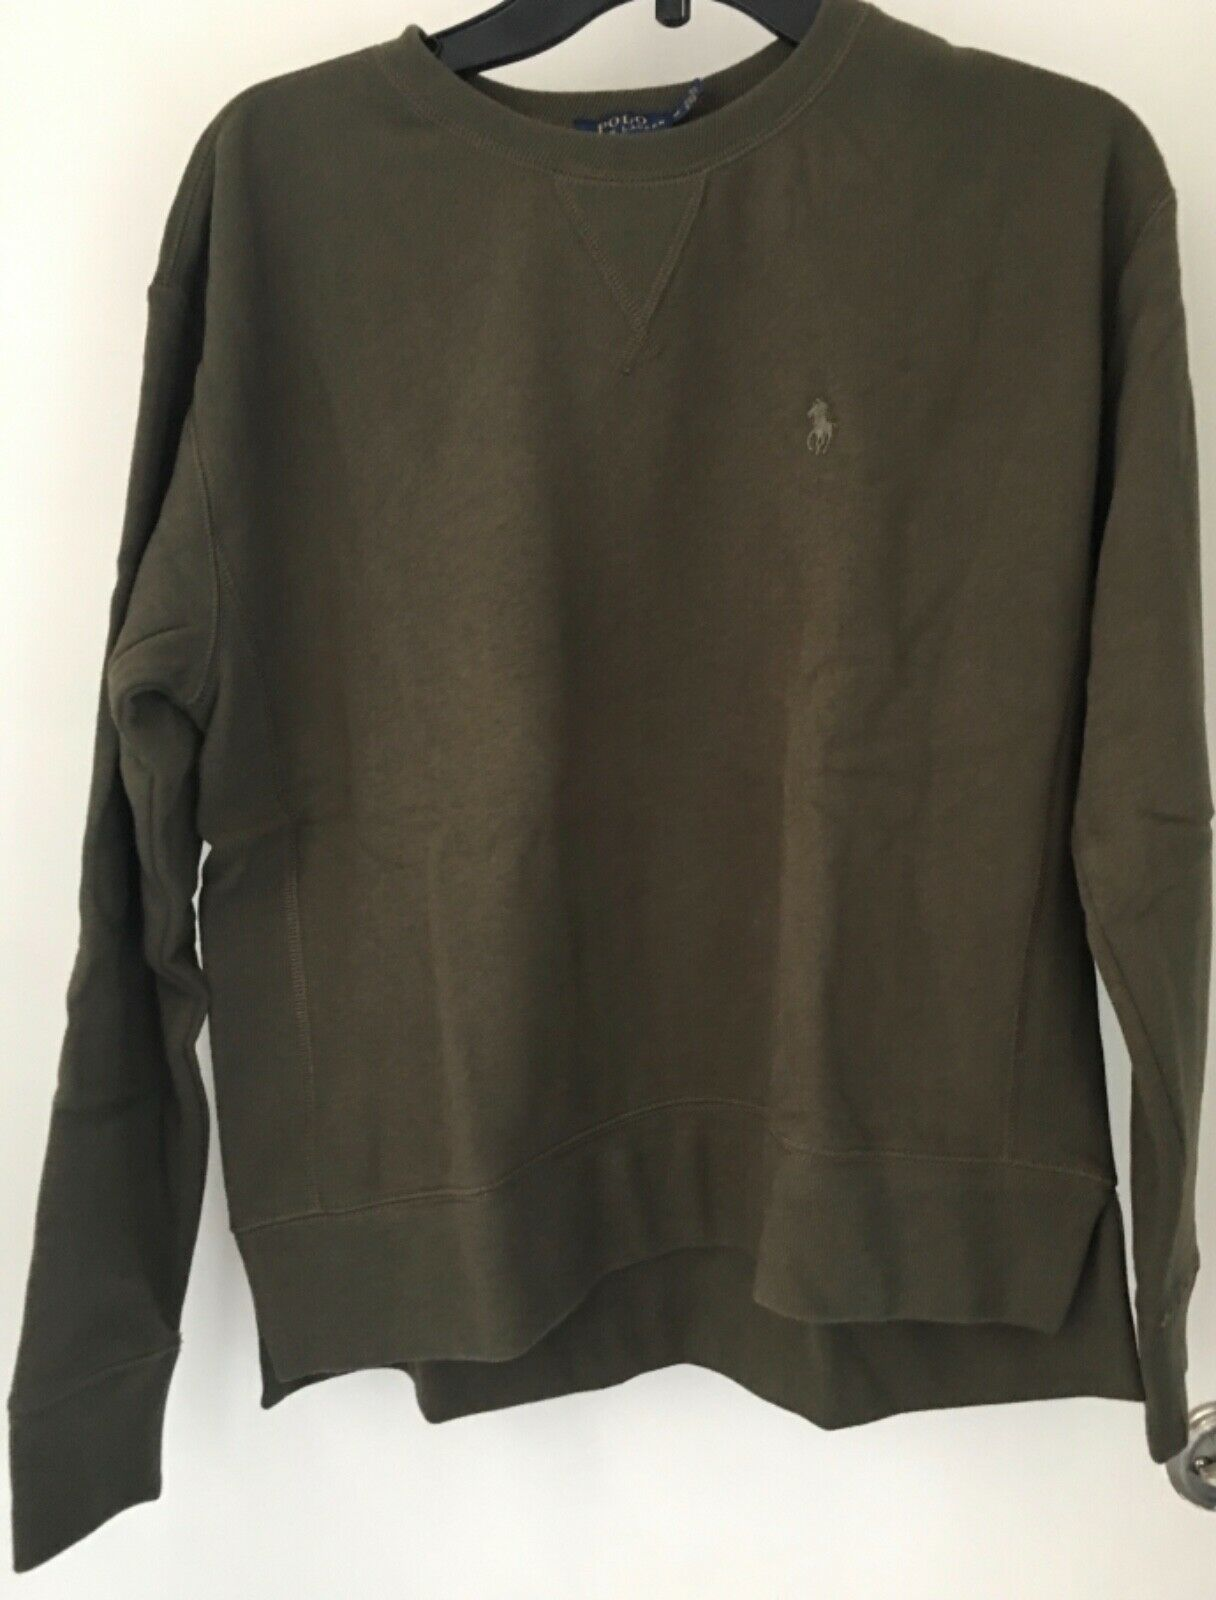 Primary image for Polo Ralph Lauren Womens Fleece Pullover Sweatshirt SOFT Flannel Olive XL NWT